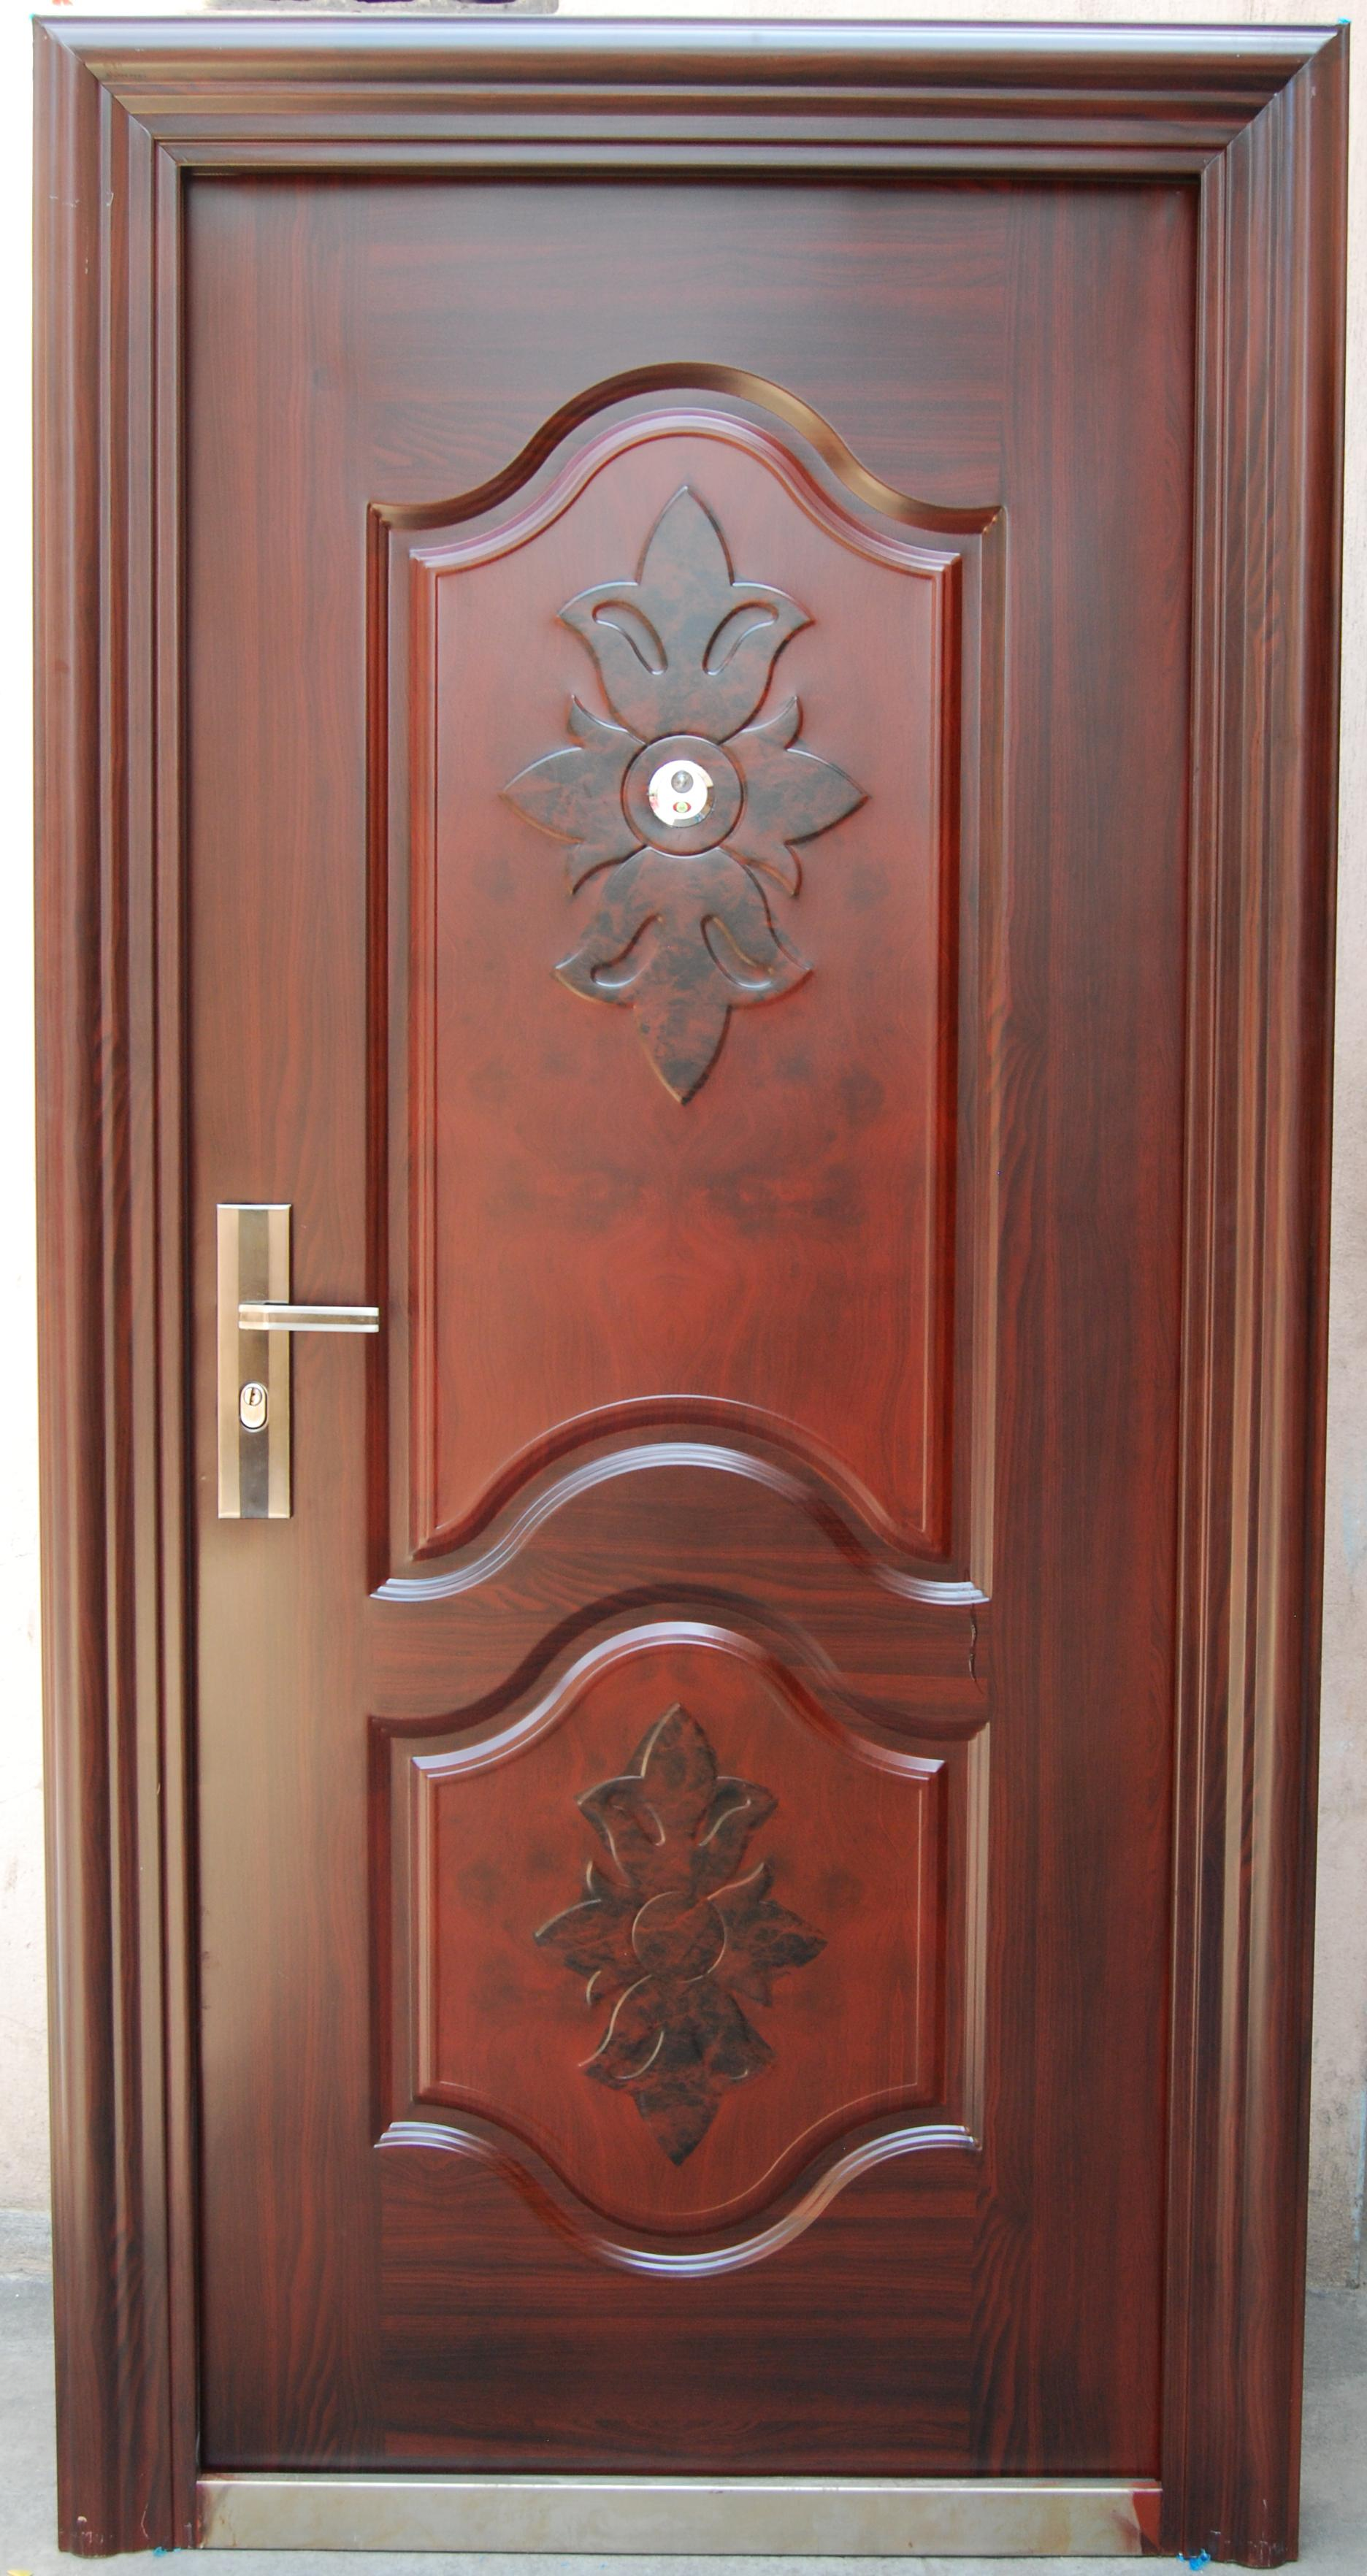 Latest Wooden Door Designs 2017 Steel Security Doors Gharexpert